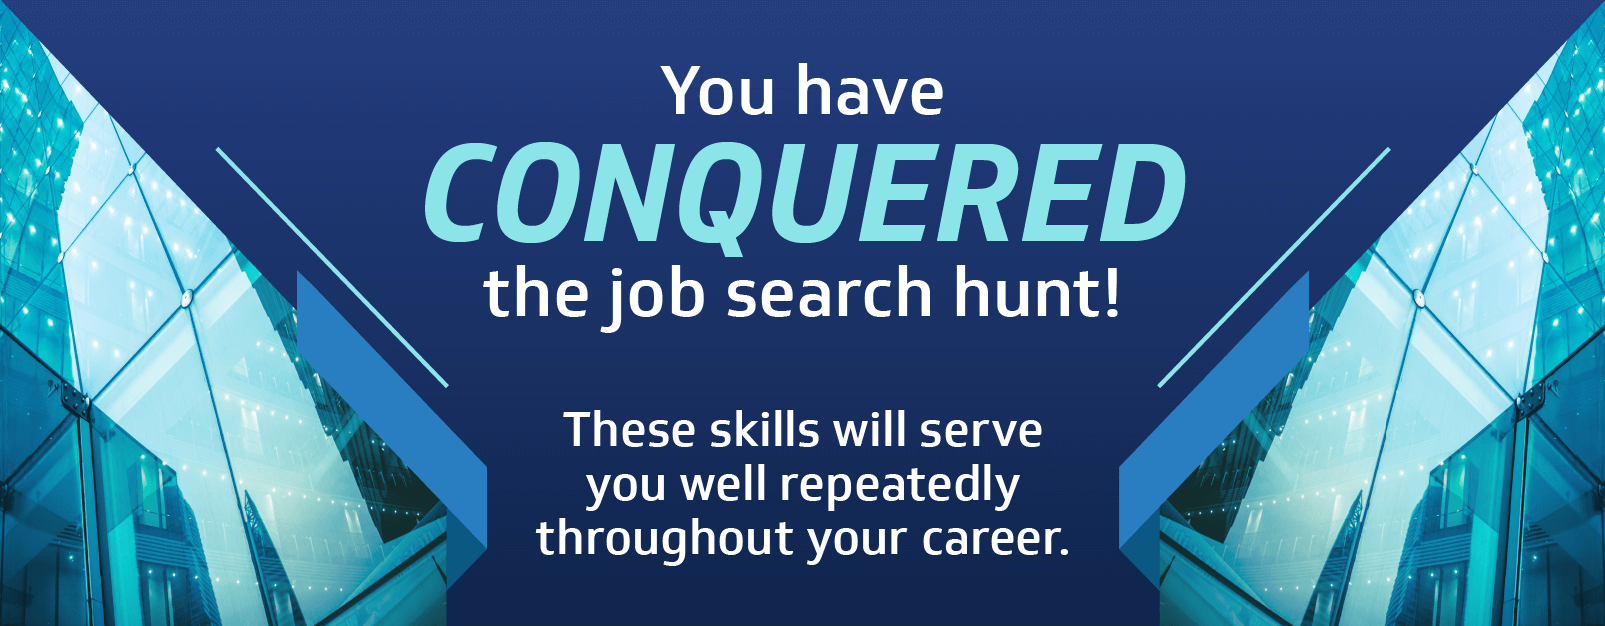 You Have Conquered the Job Search Hunt!